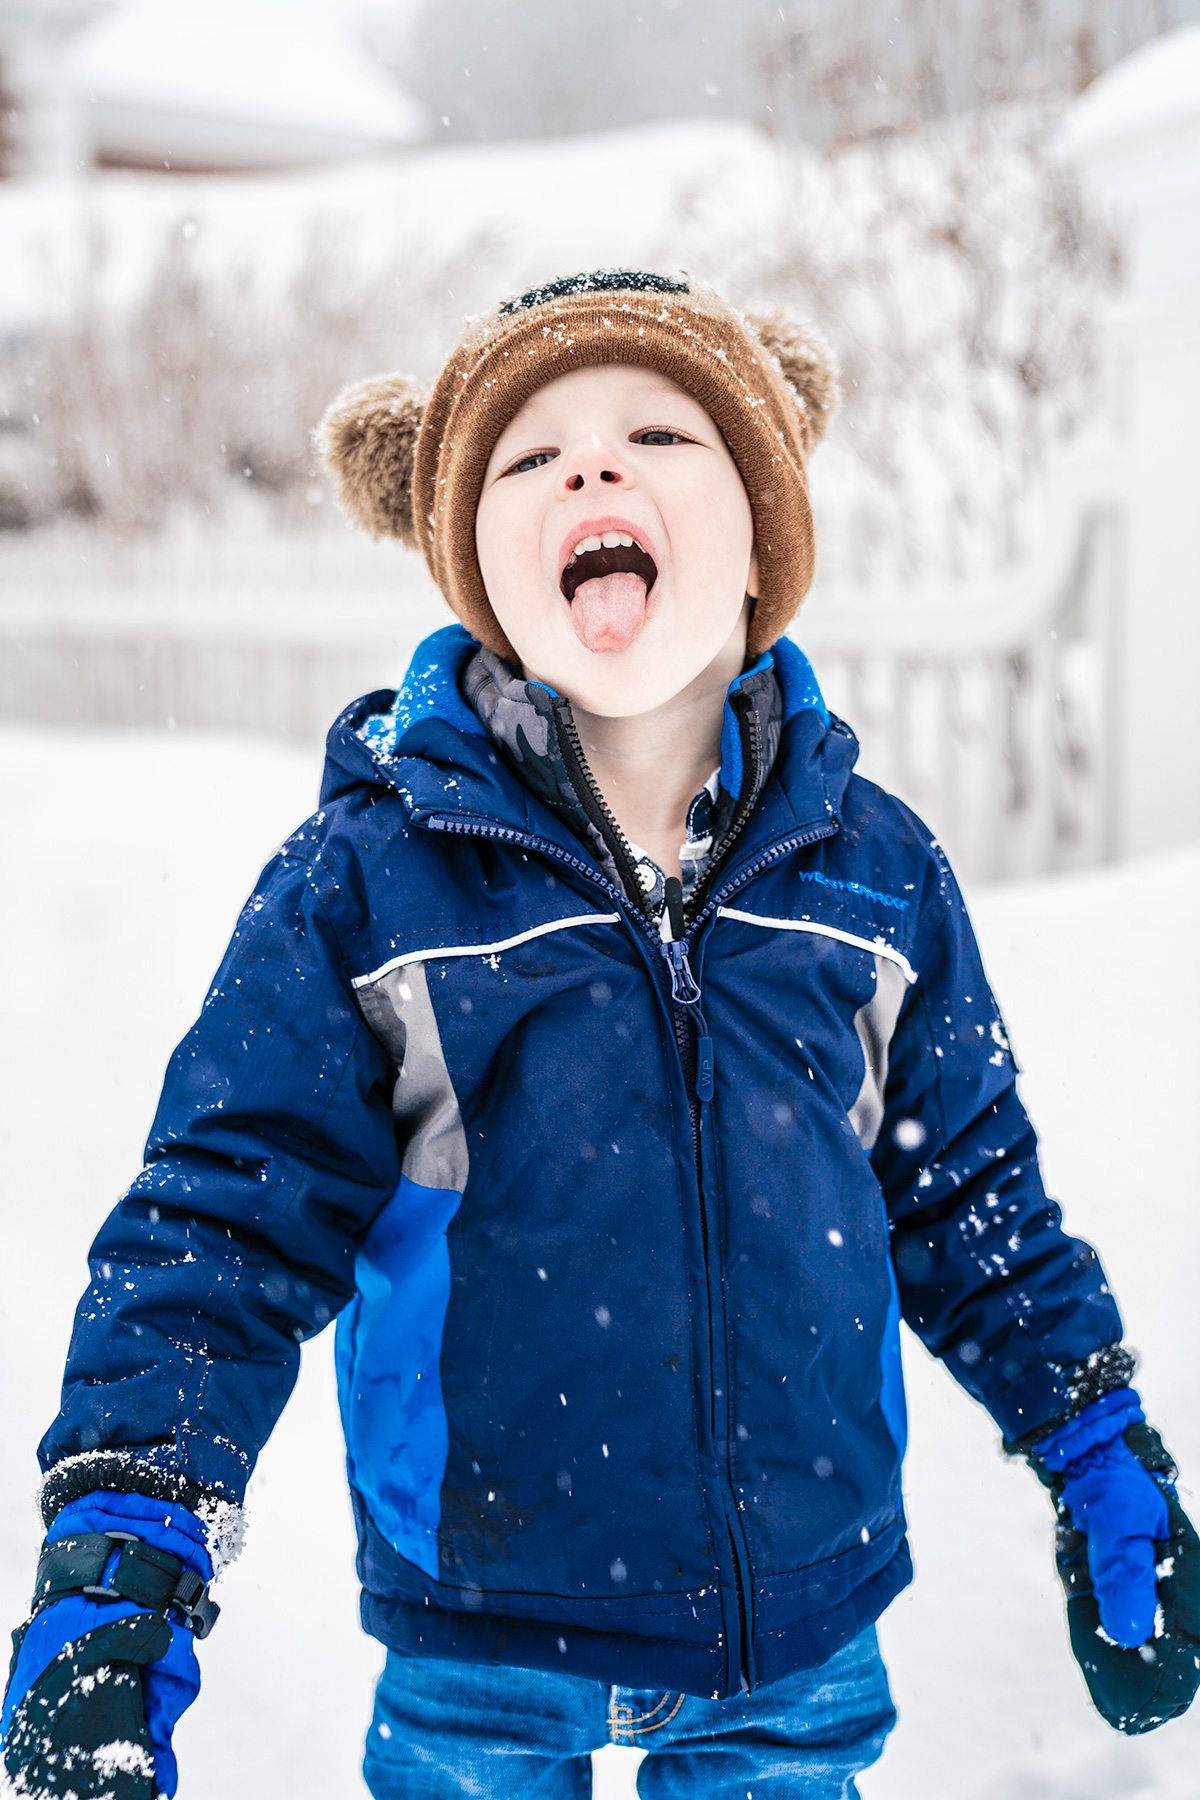 Catching-Snowflakes-on-His-Tongue-Woodstock-vermont